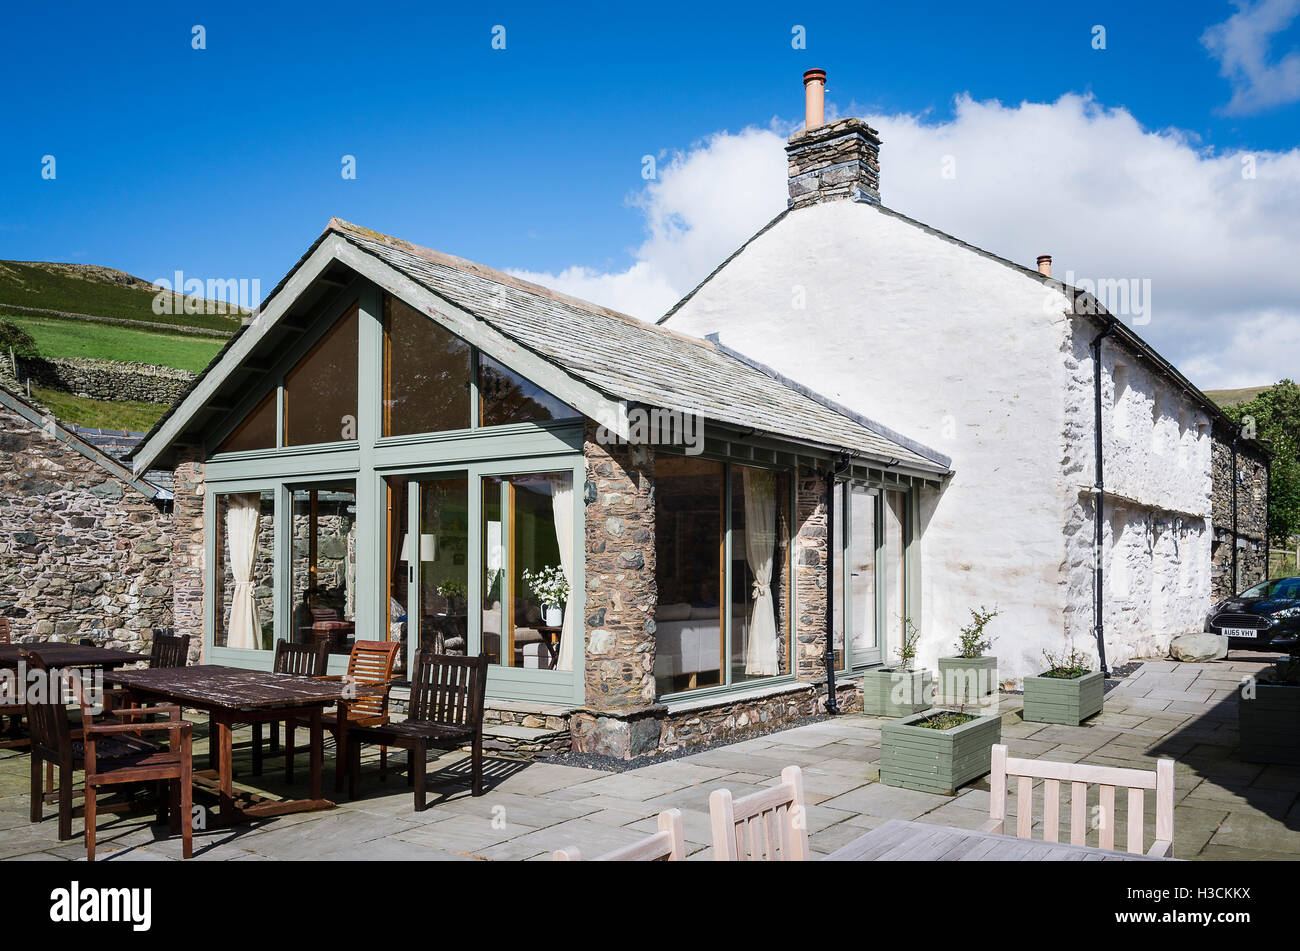 Hause Hall farm and modern conservatory used as a holiday letting in the English Lake Districtg - Stock Image